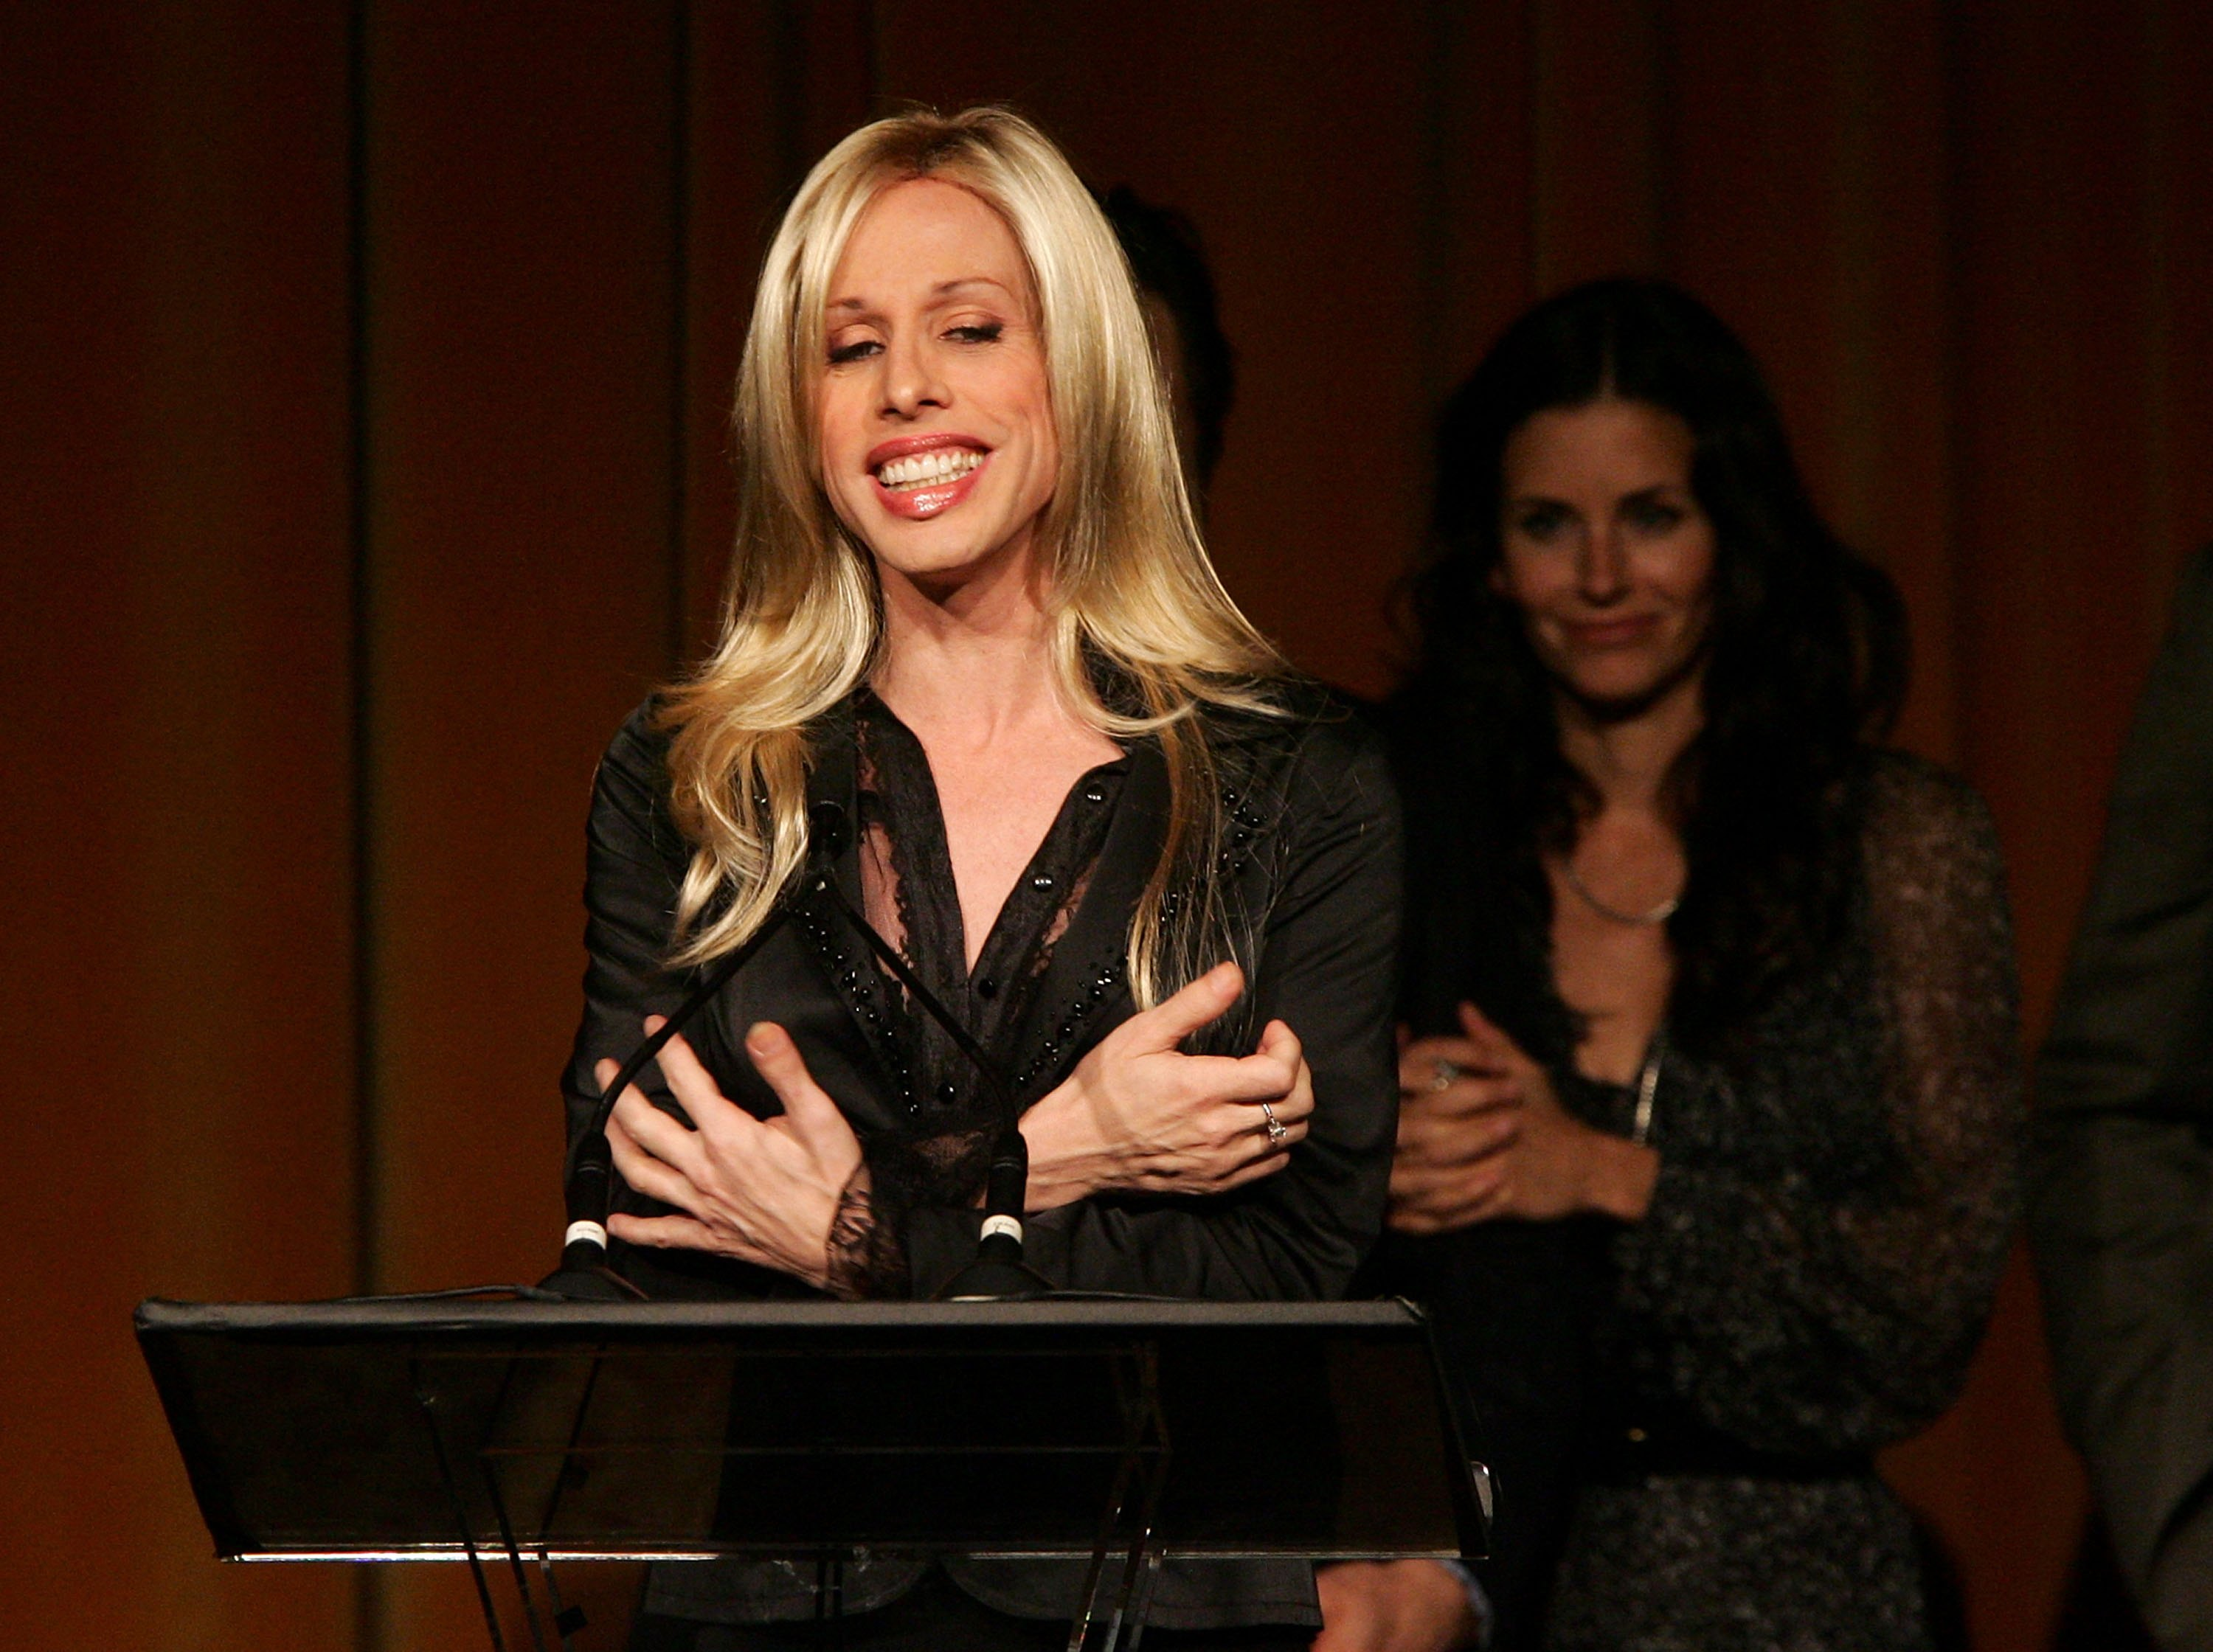 "BEVERLY HILLS, CA - MAY 10: Actress Alexis Arquette accepts the ""Platinum Circle Award"" onstage with David Arquette, Courteney Cox Arquette and Thomas Jane in the background at the AFI Associates luncheon honoring Hollywood's Arquette family with the 6th Annual ""Platinum Circle Award"" held at the Regent Beverly Wilshire Hotel on May 10, 2006 in Beverly Hills, California. (Photo by Frazer Harrison/Getty Images for AFI)"